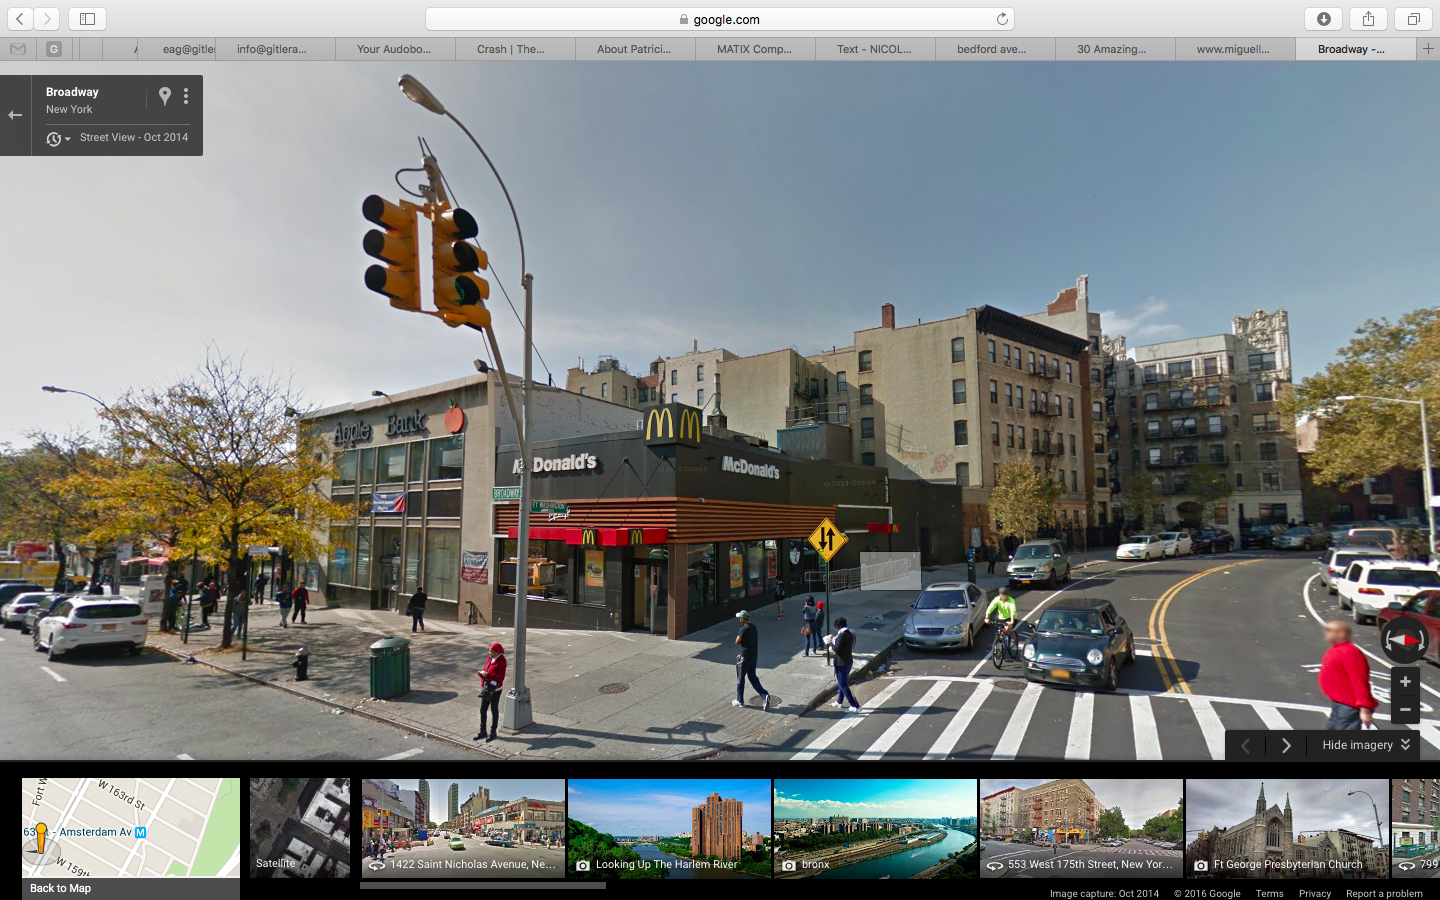 fort washington ave - 159 and broadway 2/3